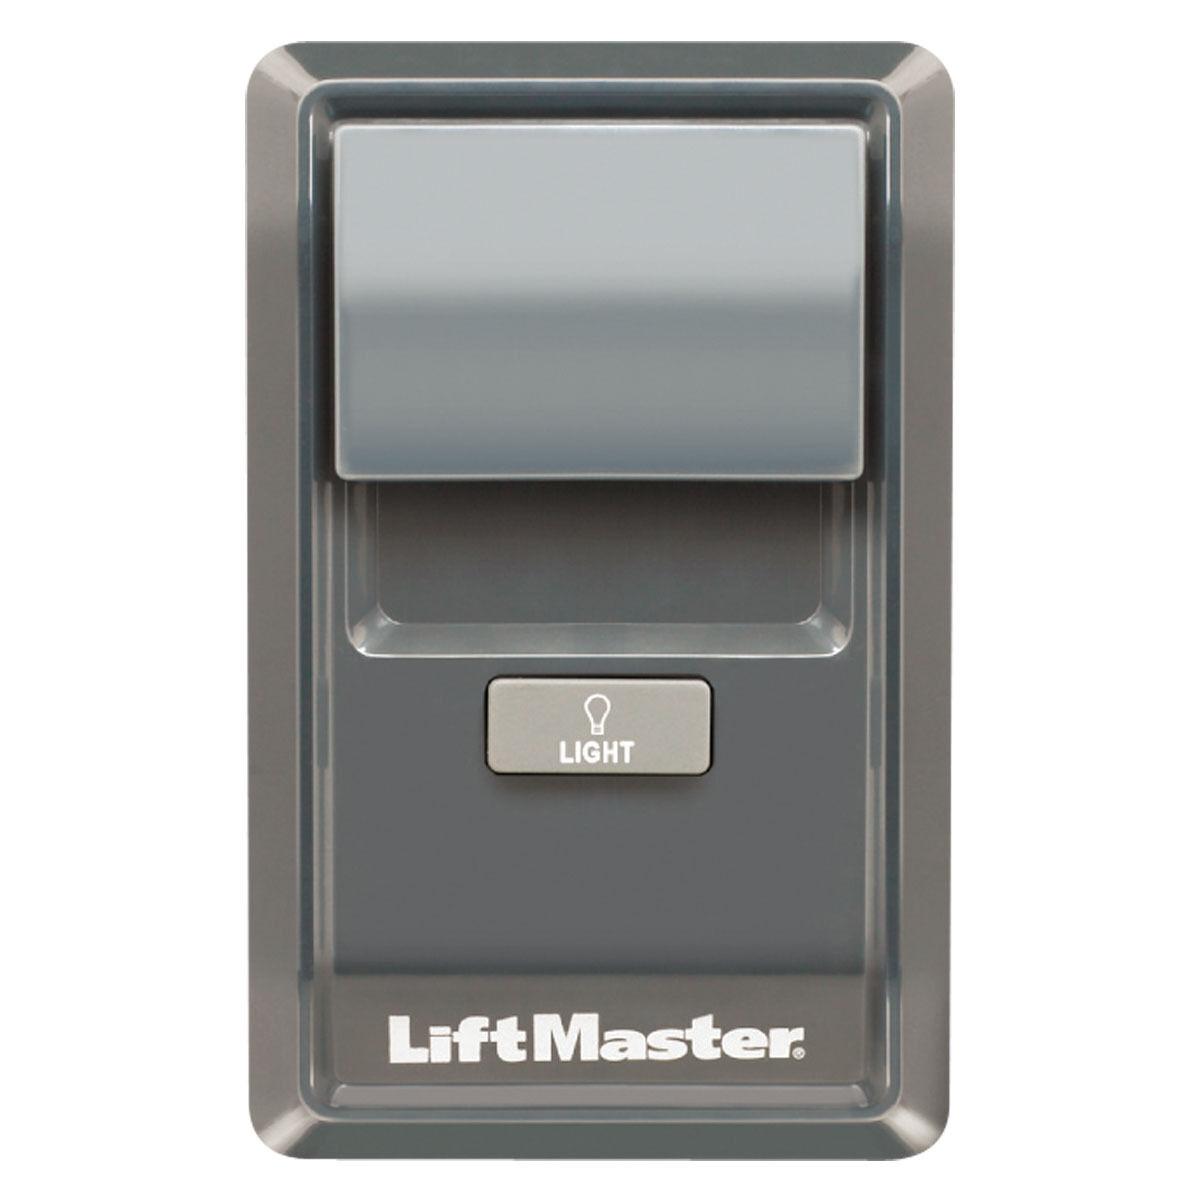 885lm Liftmaster Chamberlain Liftmaster Garage Door Wall. Hunter Garage Doors. French Door Frame. Shower Door Pivot Hinge. Front Door Victorian Style. Shelterlogic Roundtop Instant Garage. Watertight Garage Door. Garage Door Indianapolis. Glass Commercial Door